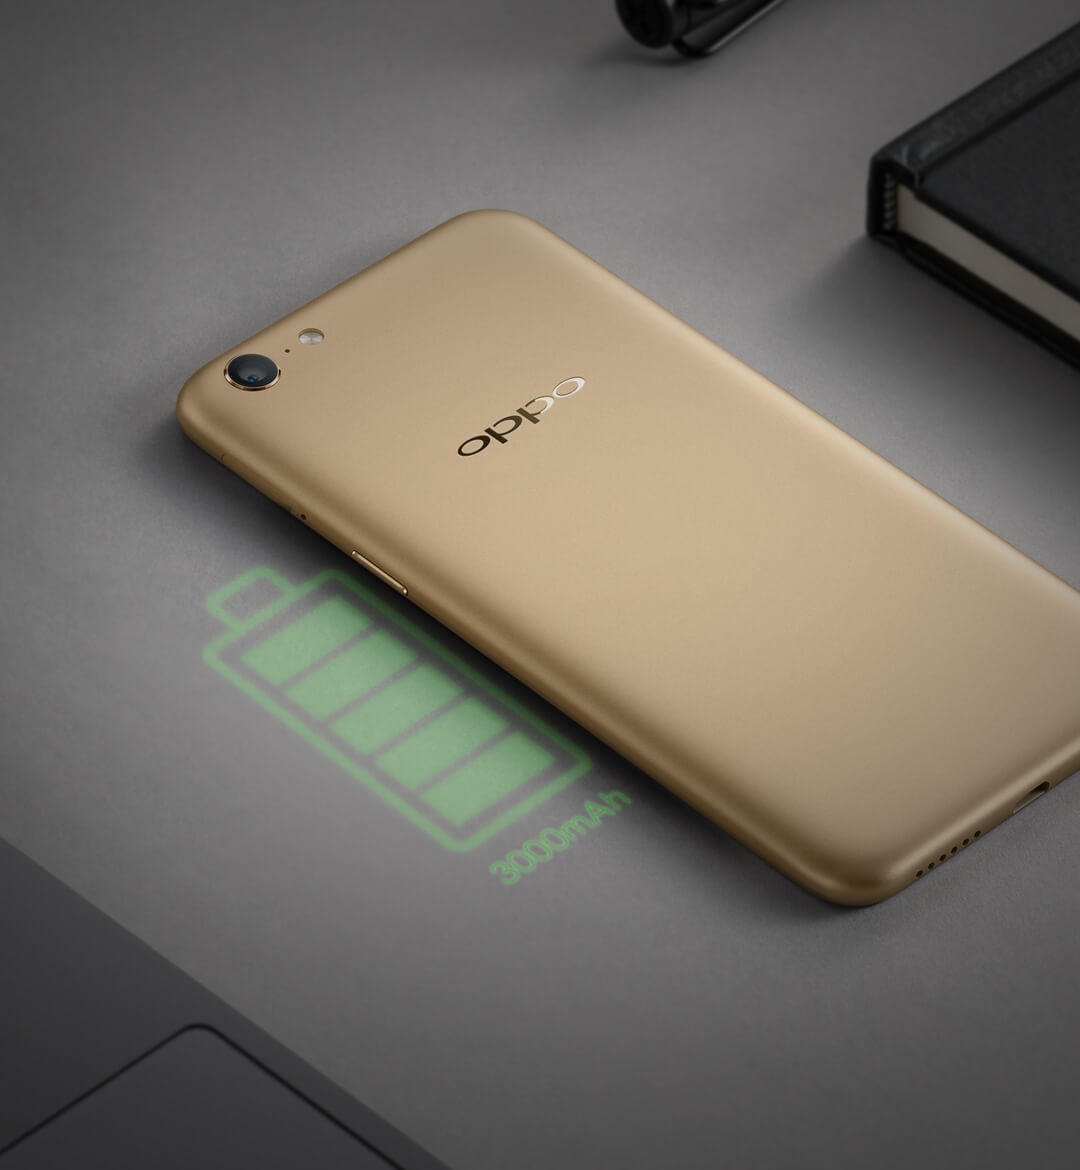 Image result for Oppo launched A71 smartphone with 13 MP rear camera in Pakistan, Malaysia